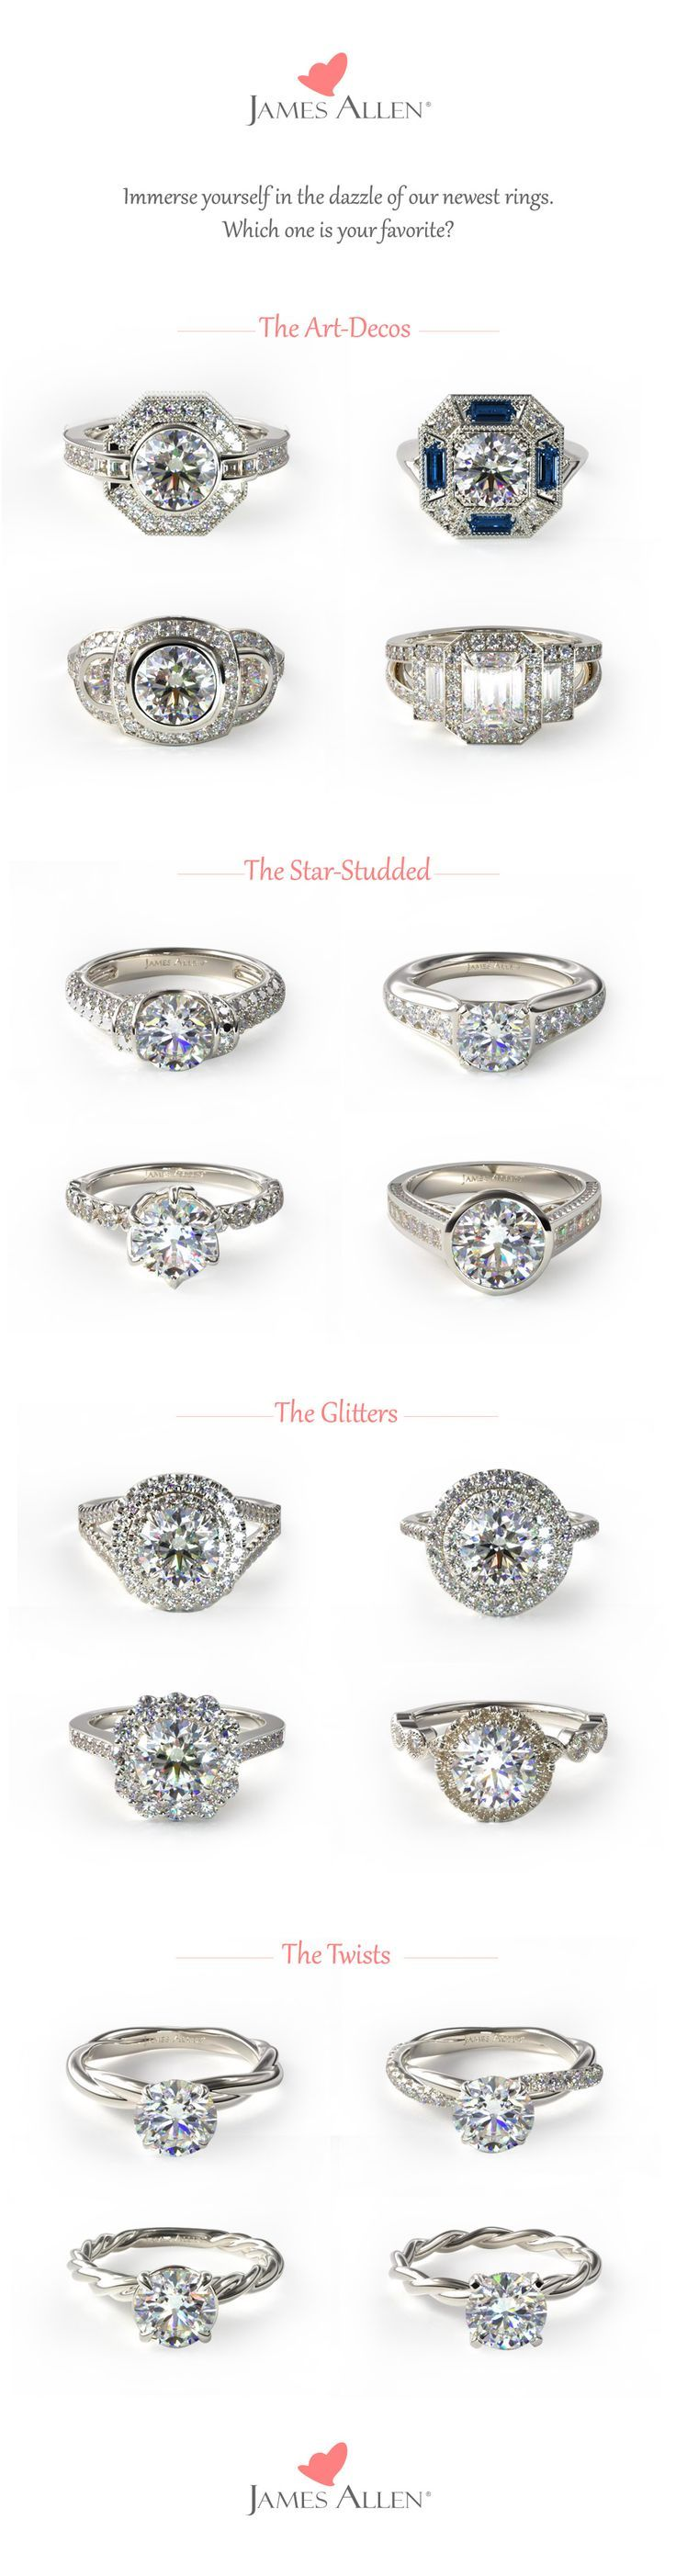 This just in: New ring settings available at James Allen. From twists to star-studded sparklers--Which one is your favorite?? #Jamesallenrings See more rings at: www.jamesallen.com